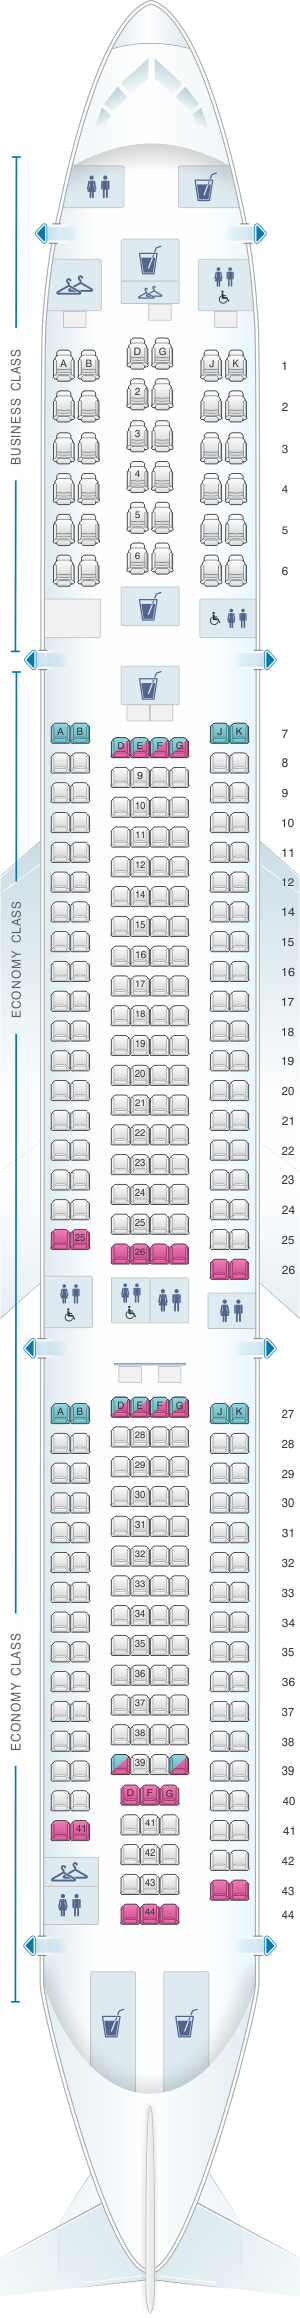 Seat Map China Airlines Airbus A330 300 Config 2